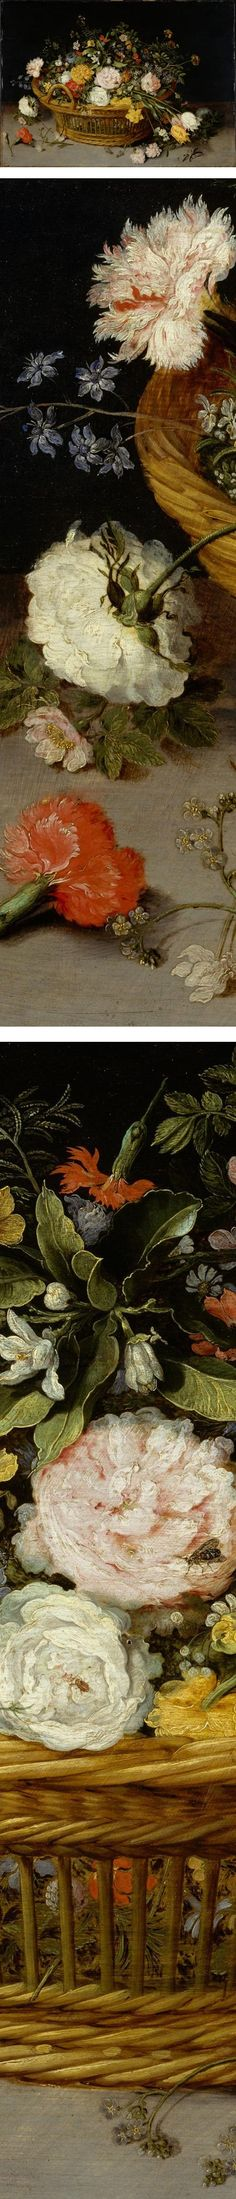 A Basket of Flowers, Jan Brueghel the Younger